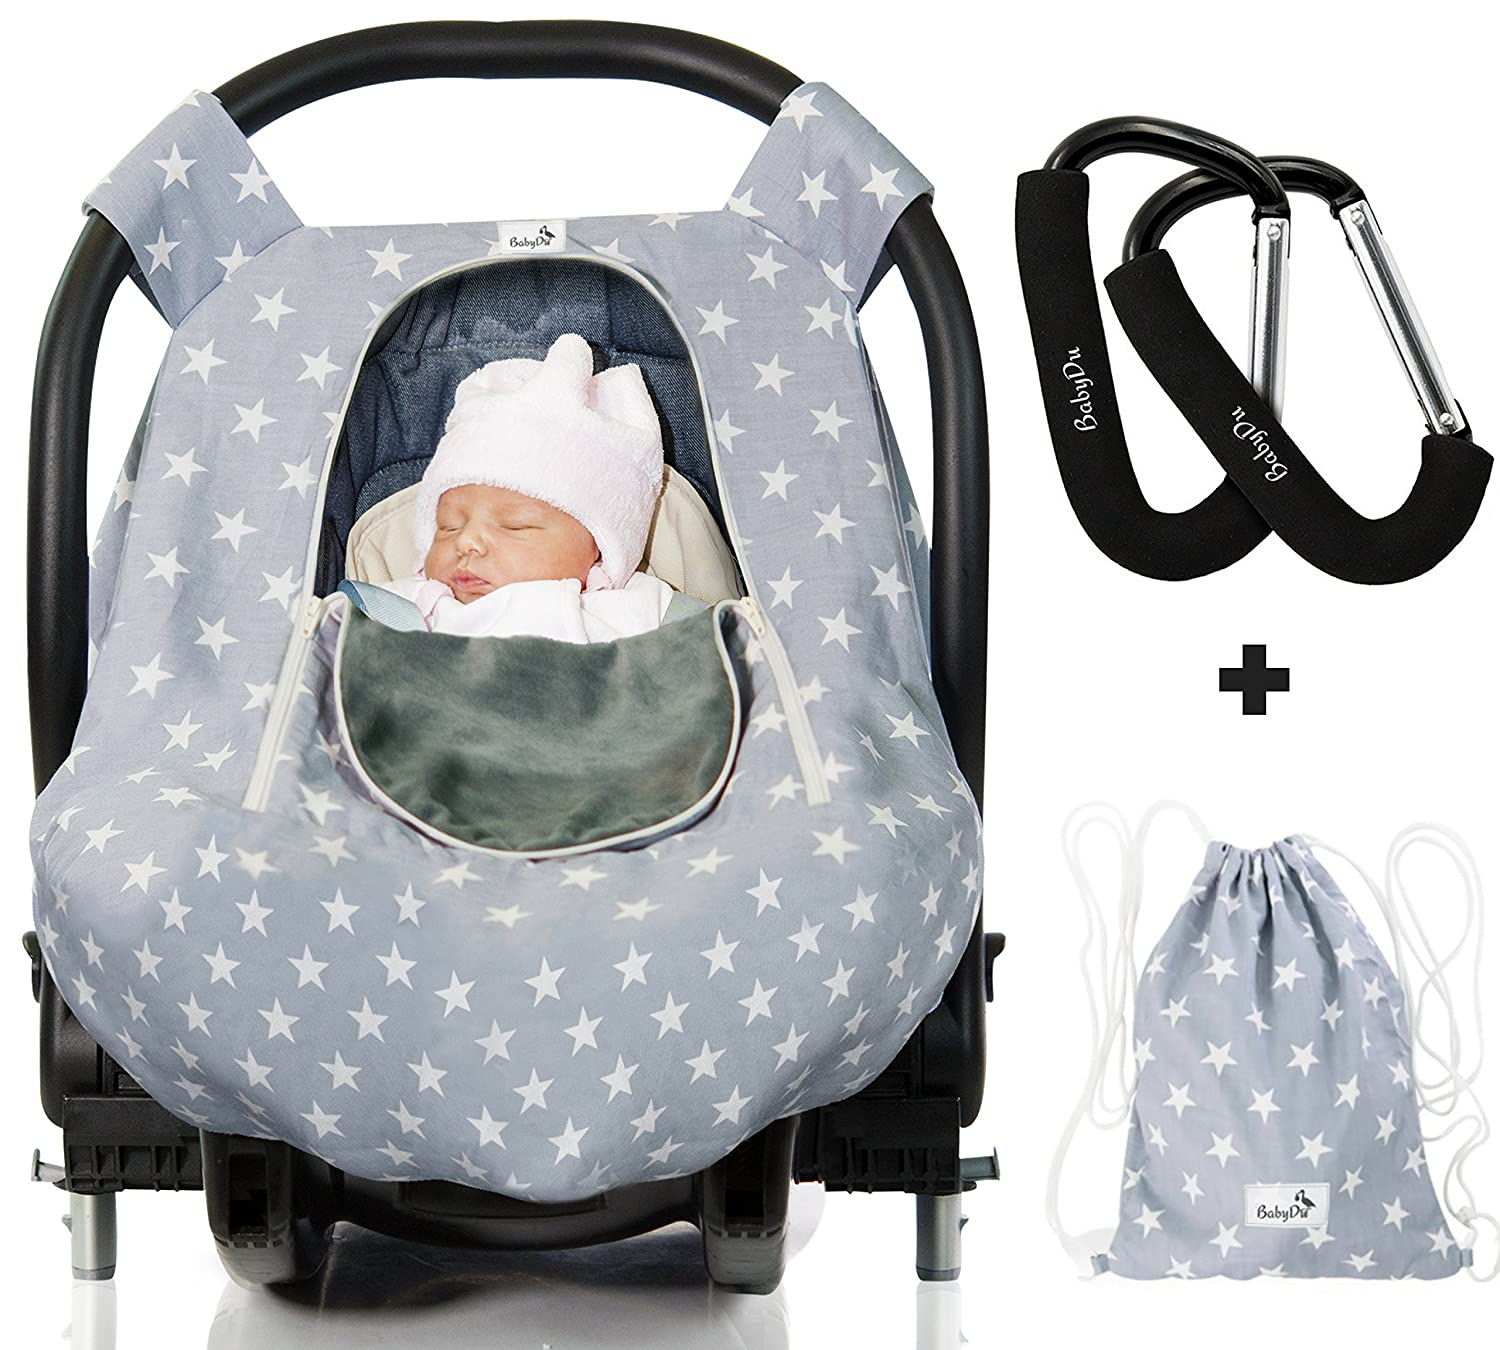 Astounding Luxurious Baby Car Seat Cover For Boys And Girls For Spring Summer Autumn Winter Windproof Universal Dailytribune Chair Design For Home Dailytribuneorg